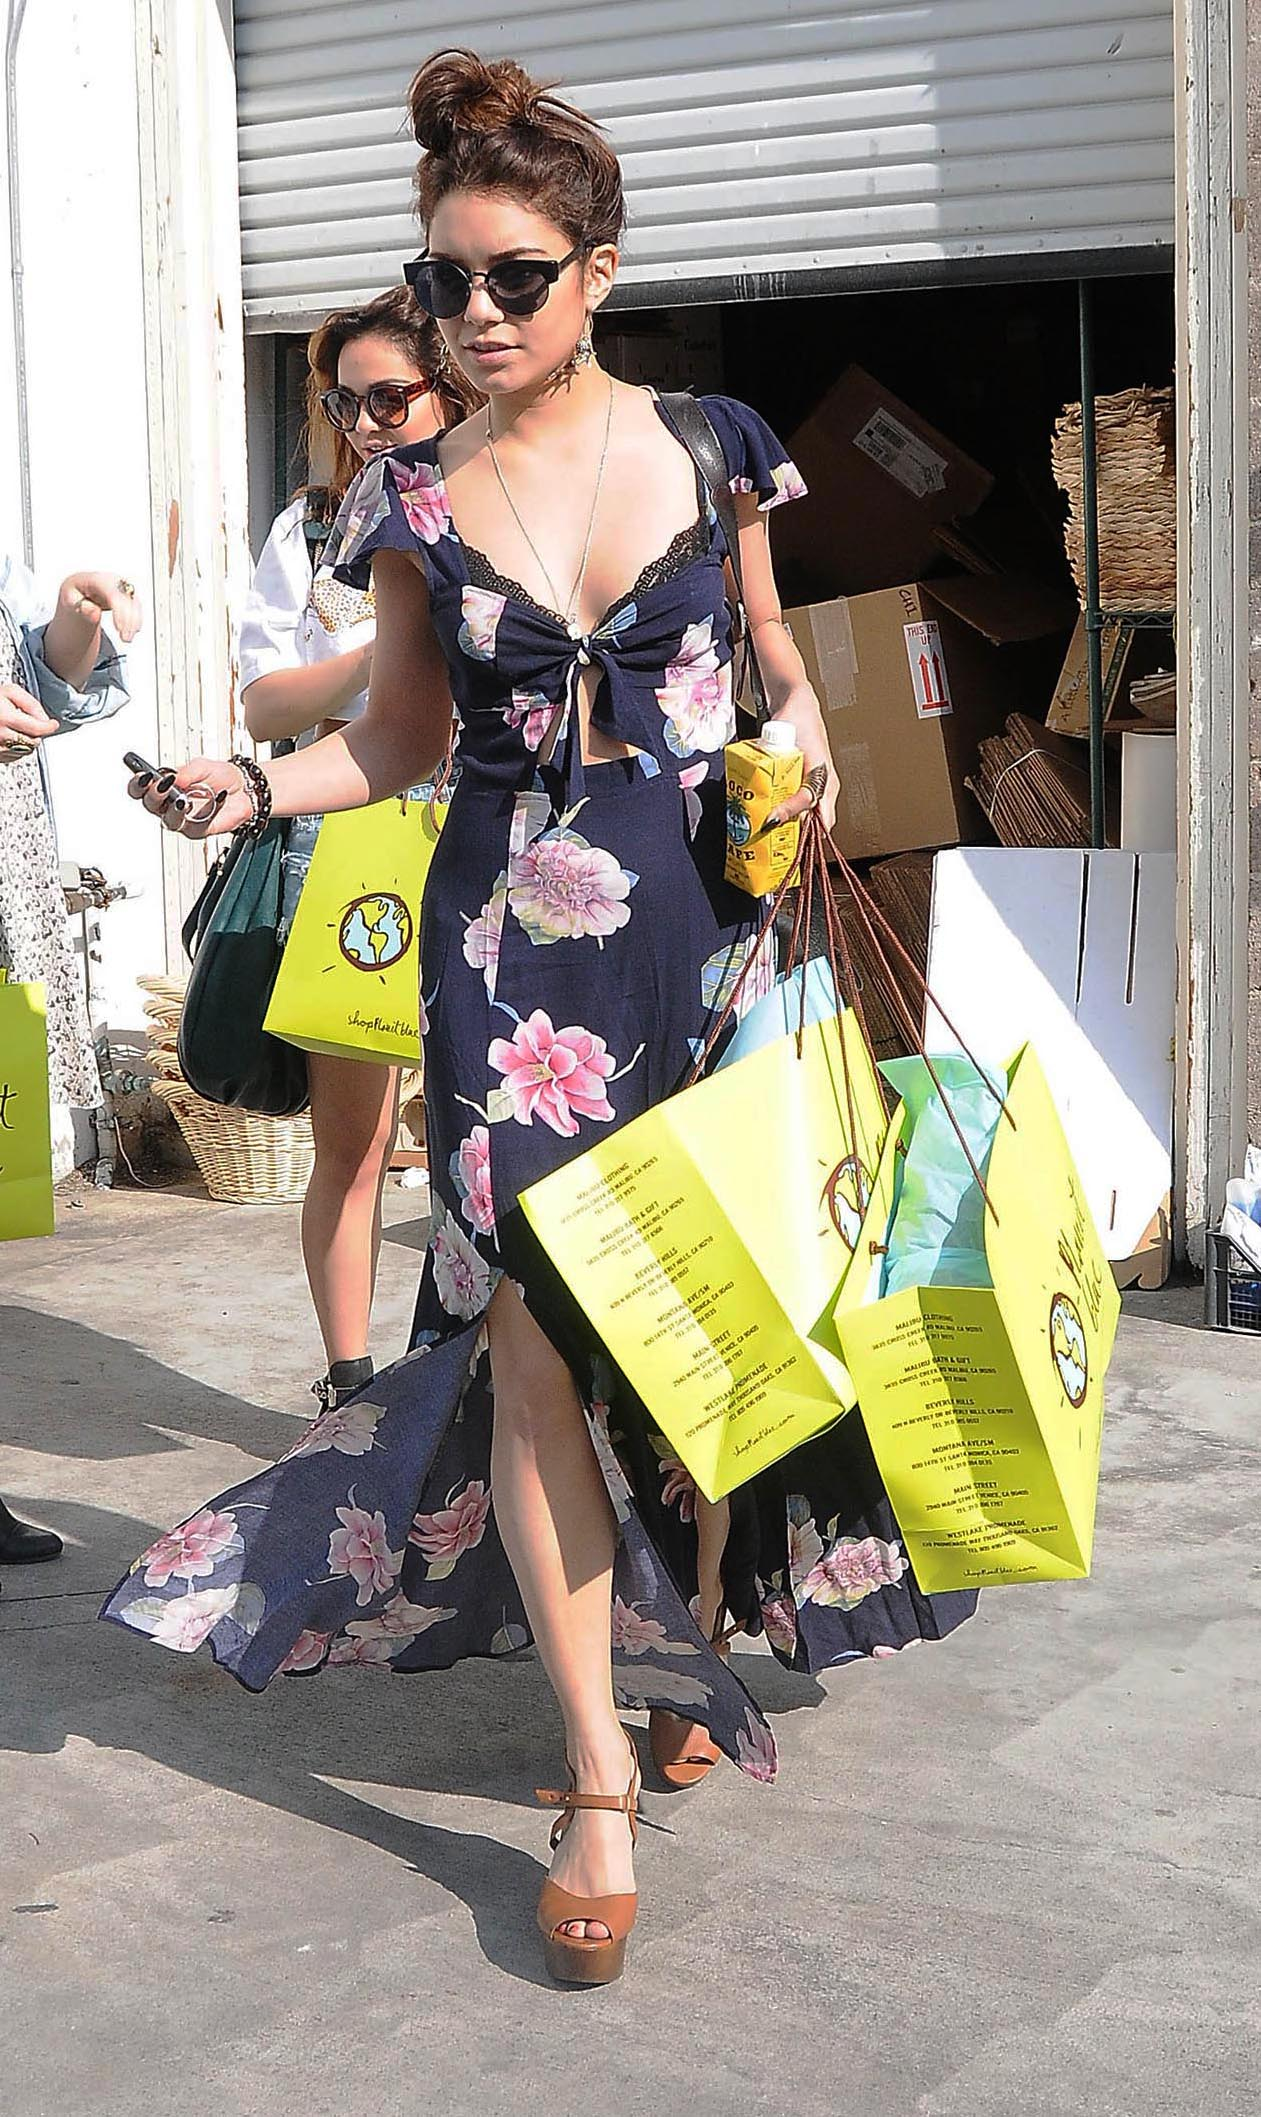 Vanessa Hudgens, juggles her shopping bags with her Coco Cafe beverage, while shopping in L.A. (Ramey Photo)